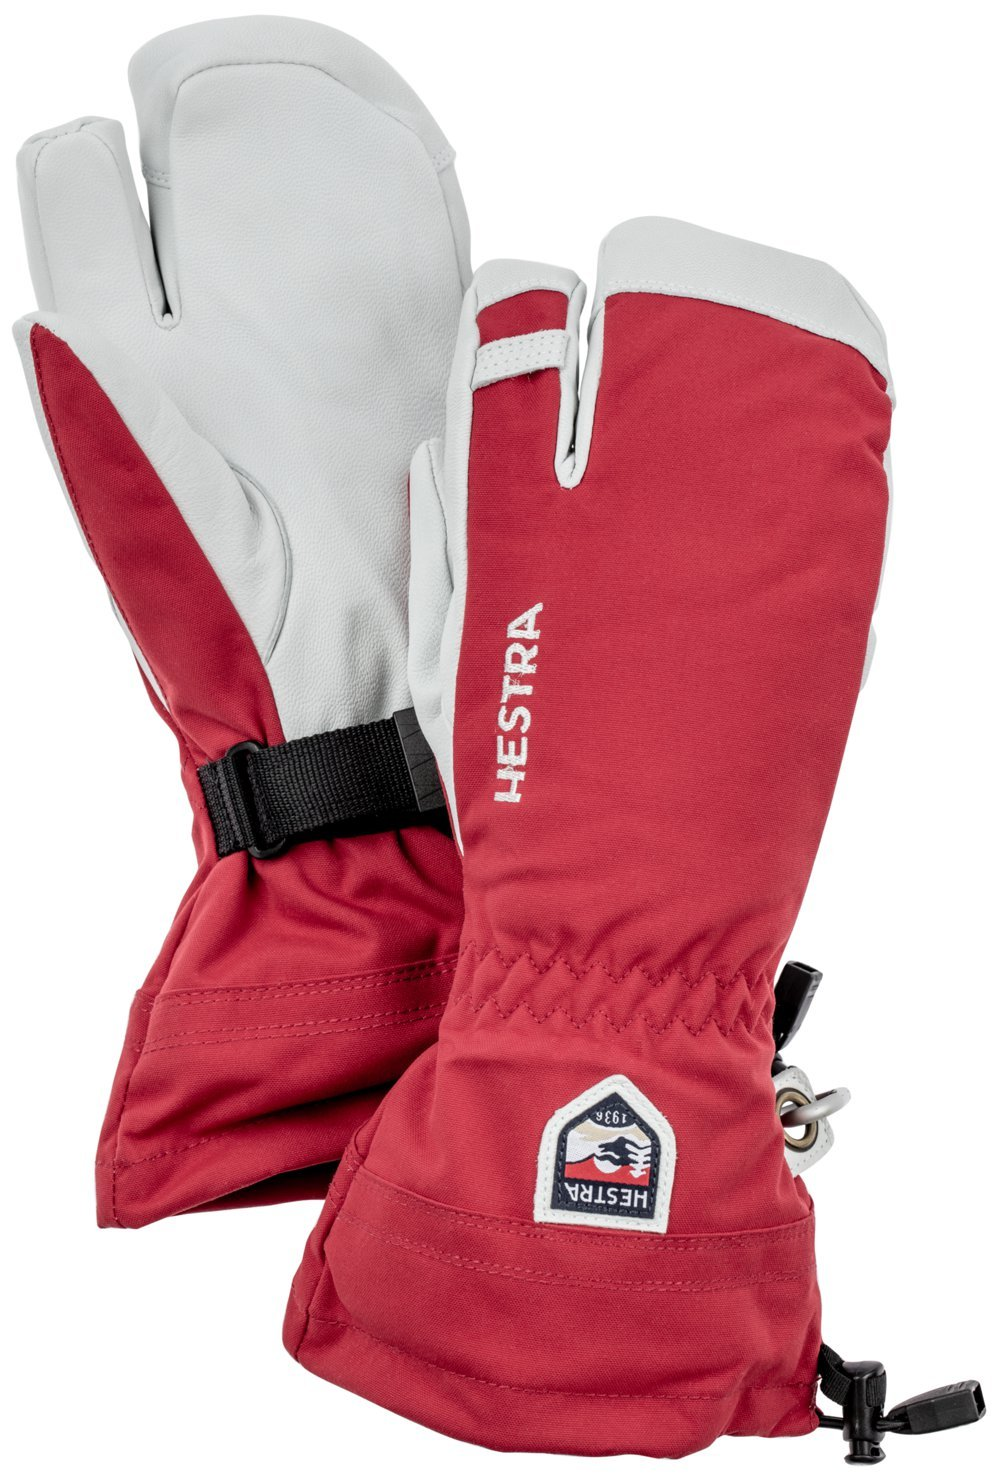 Hestra Army Leather Heli Ski 3-Finger Gloves with Gauntlet,Red,10 by Hestra